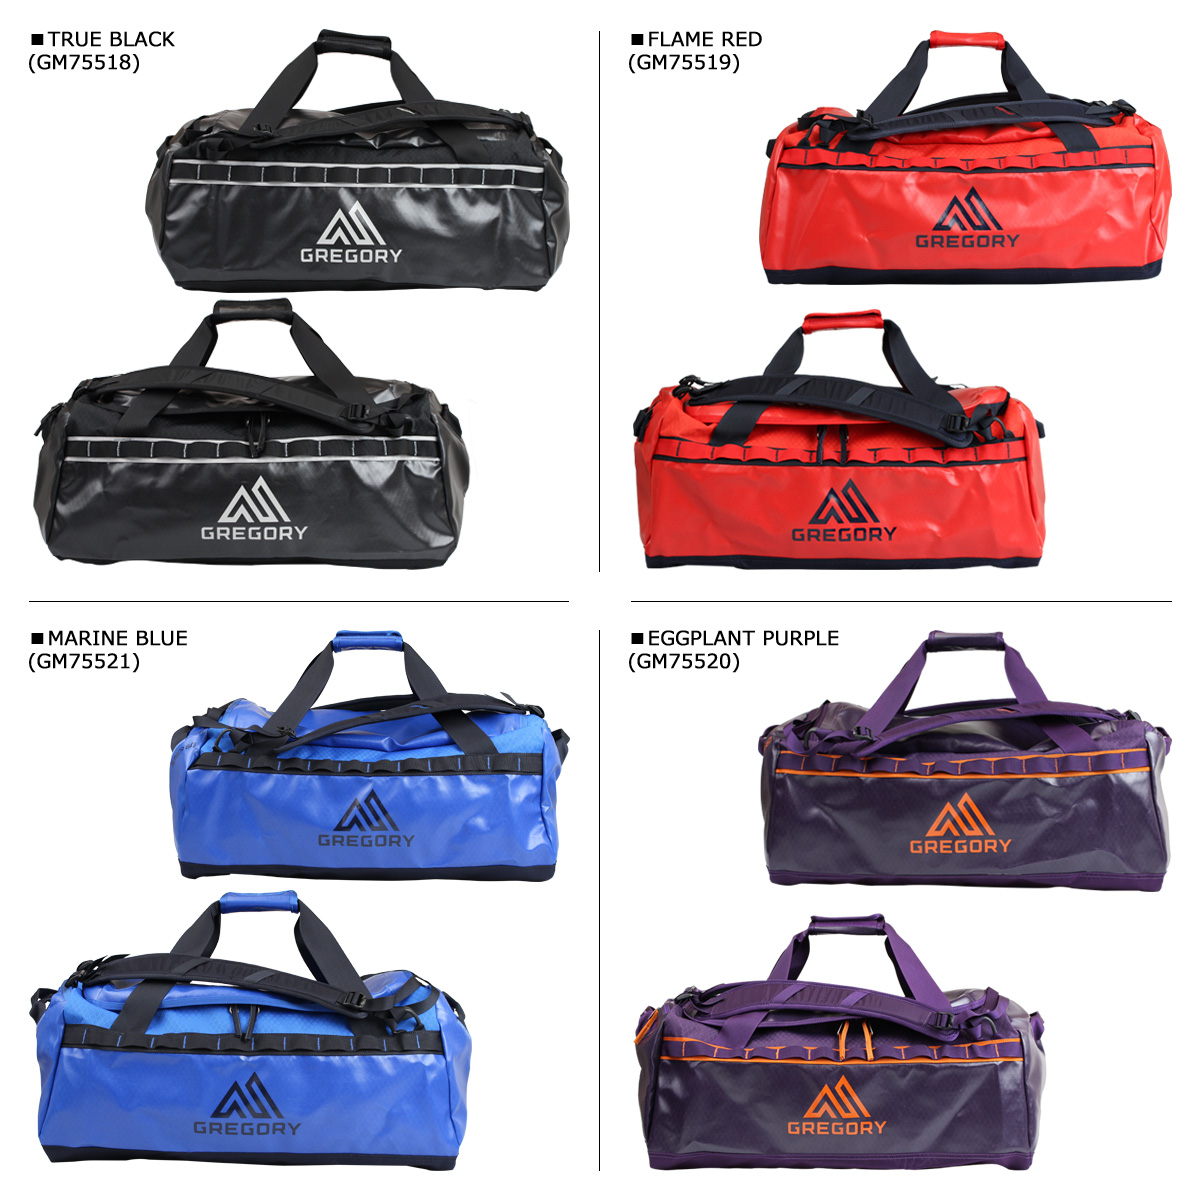 Gregory GREGORY mens Womens Duffle Bag 60 litter 2 color ALPACA DUFFLE 60 [11 / 13 new in stock]